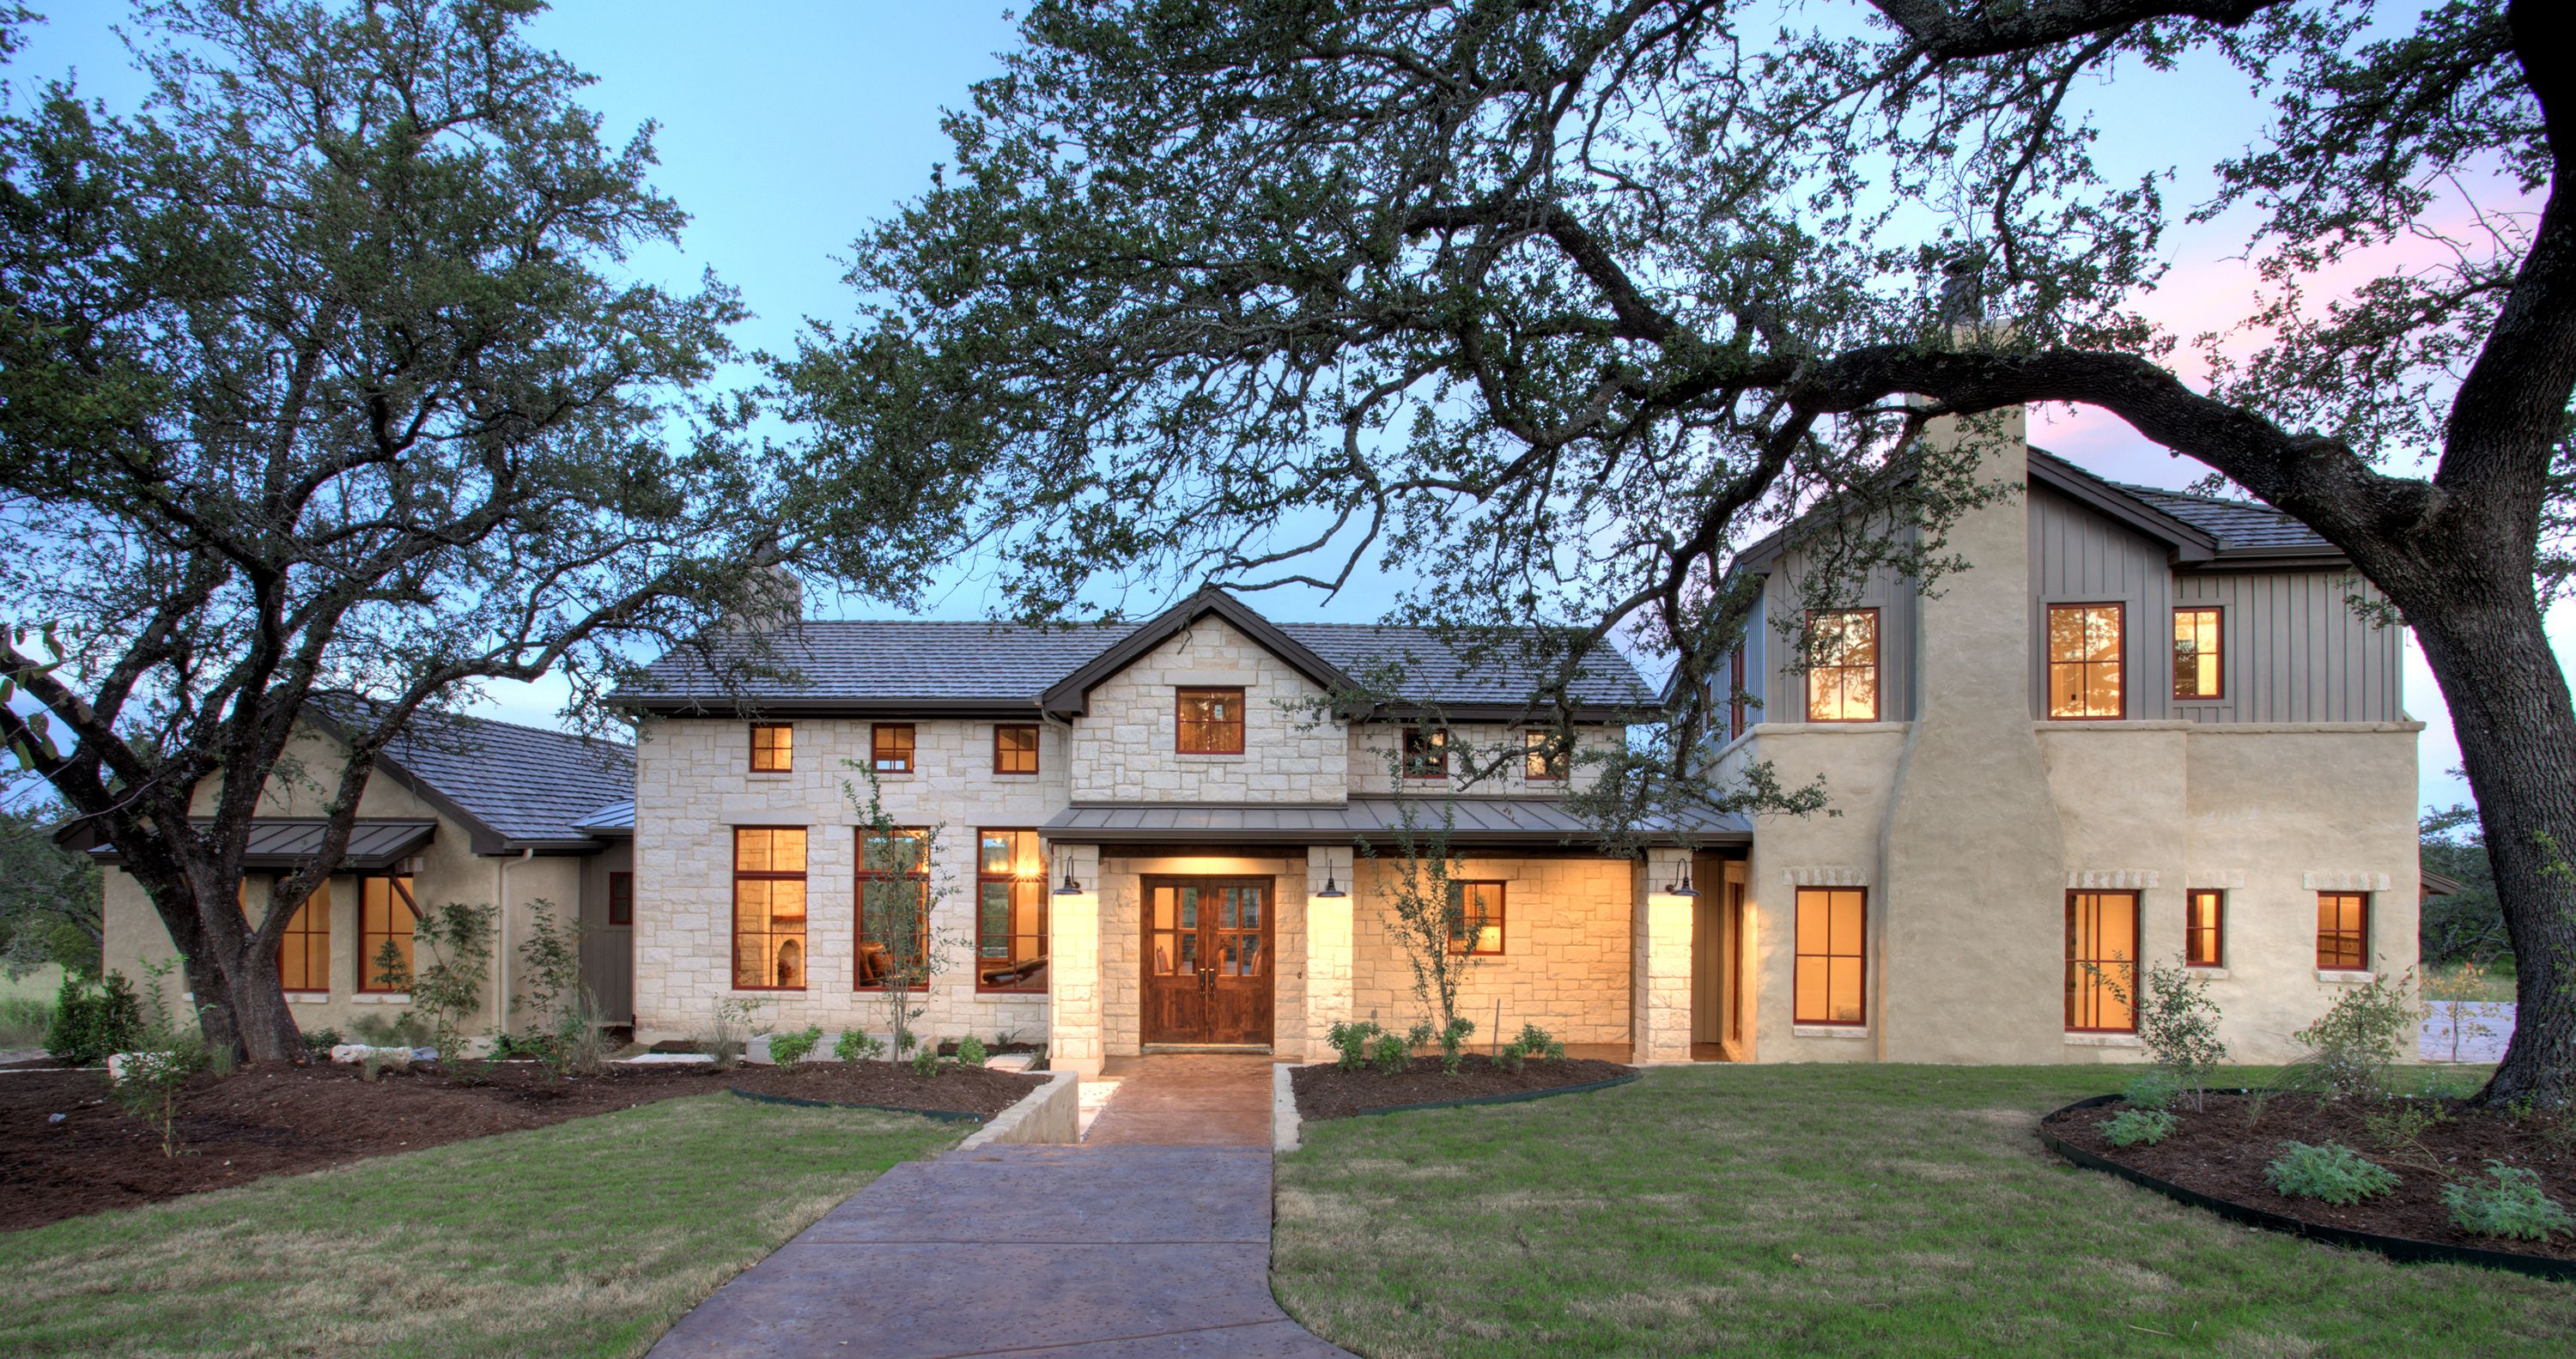 Texas hill country architecture floor plans joy studio Texas hill country house designs